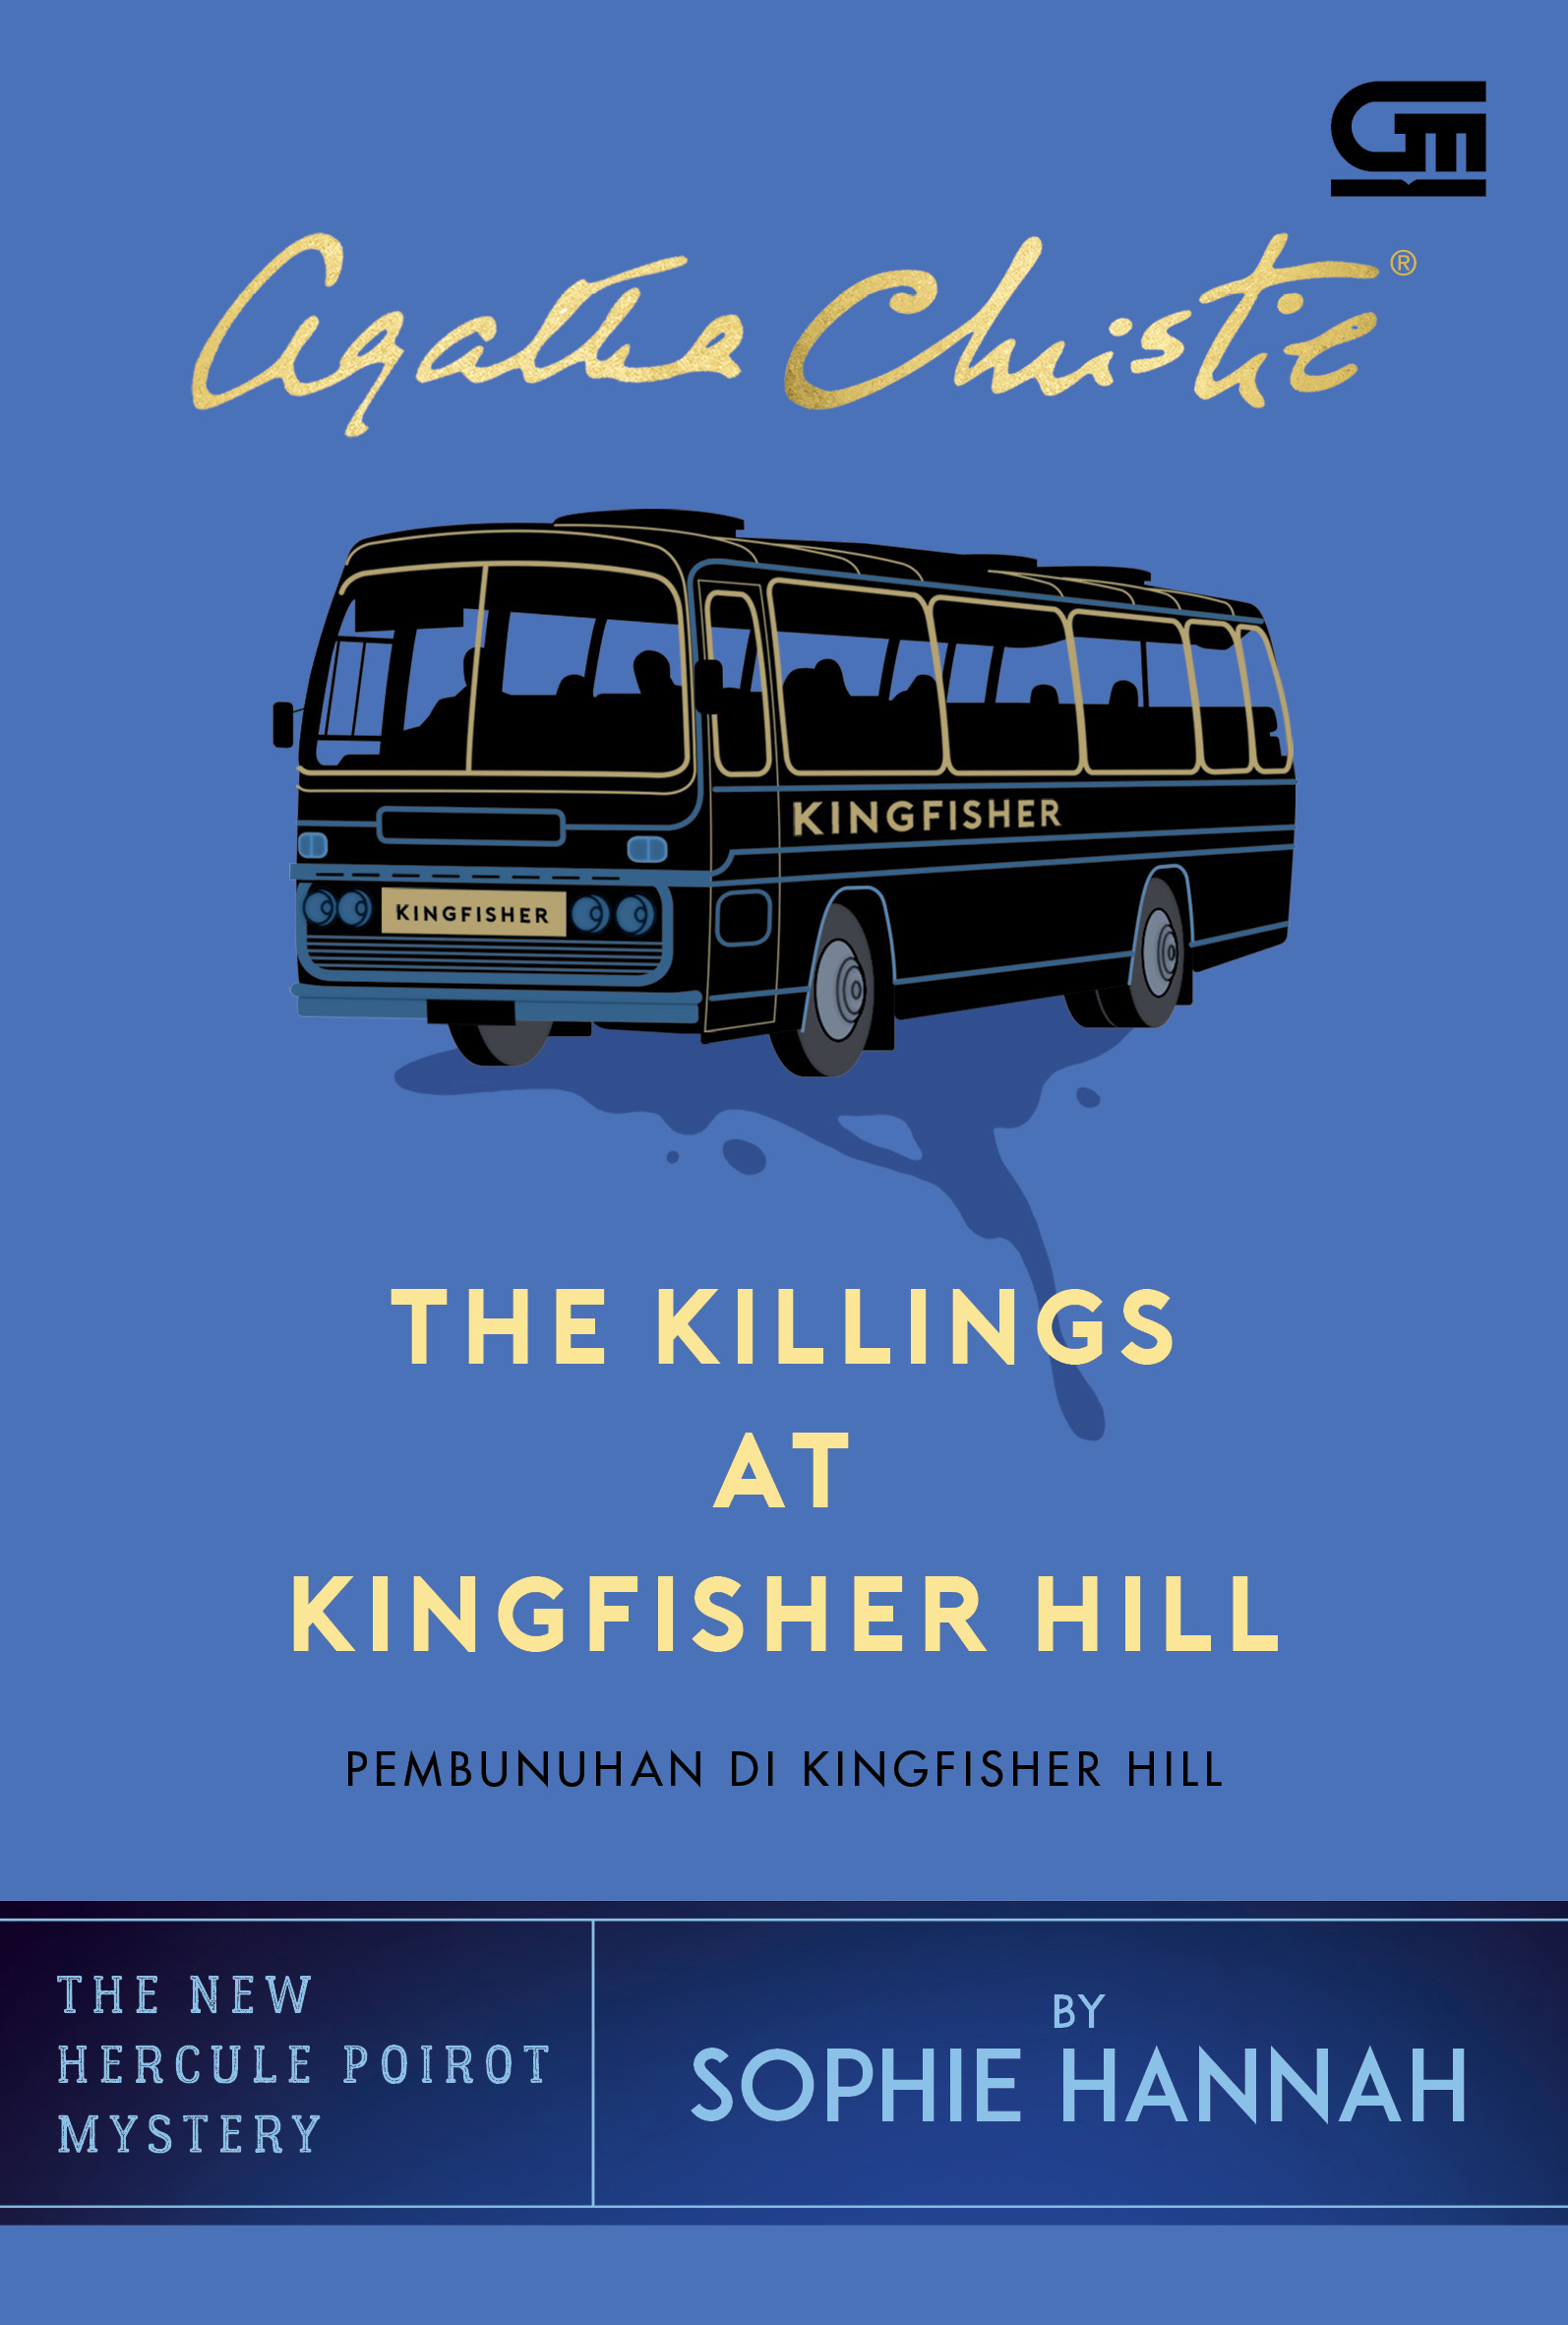 Pembunuhan di Kingfisher Hill (The Killings at Kingfisher Hill)